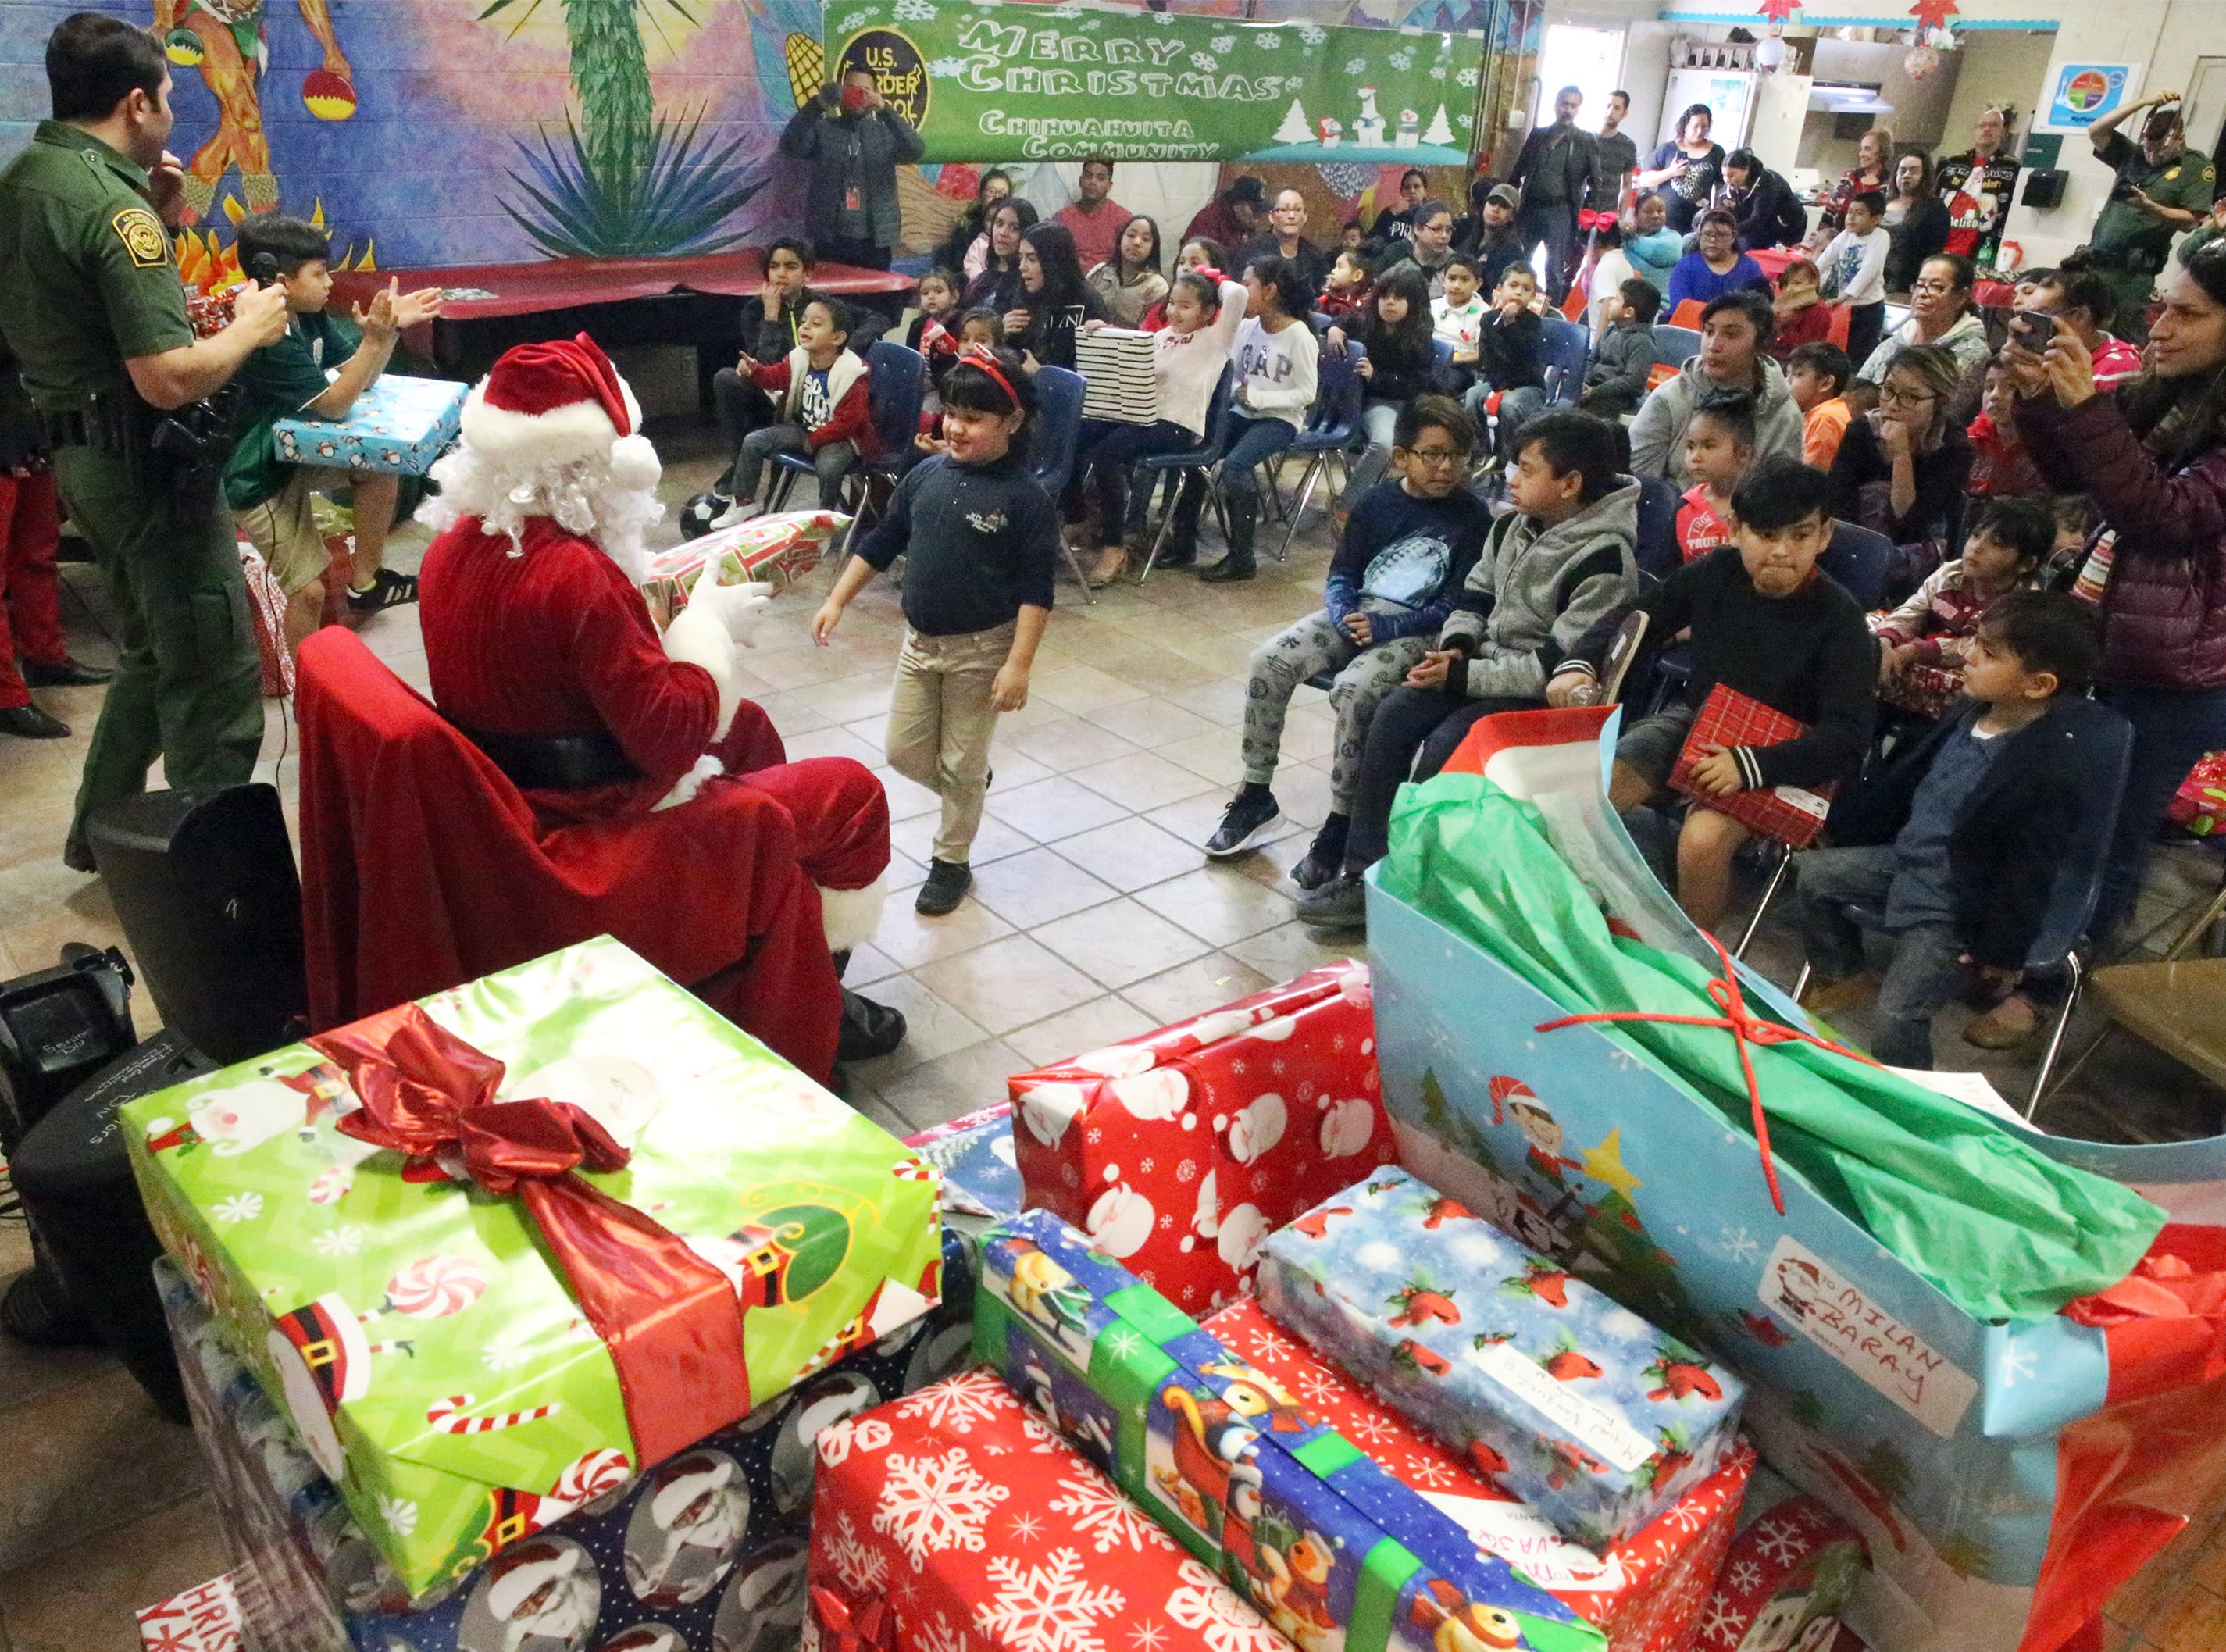 """Santa Clause hands out gifts to more than 100 youngsters during the 26th annual U.S. Border Patrol Chihuahuita Christmas Party Friday at the Chihuahuita Community Center at 417 Charles Road. """"Its one of the things Border Patrol likes to do for the community,"""" said spokesman Carlos Antunez, adding that the children from the neighborhood see them every day. Santa rode up in back of a pickup truck as children waited for him to arrive outside the community center. They were treated to holiday-themed snacks."""